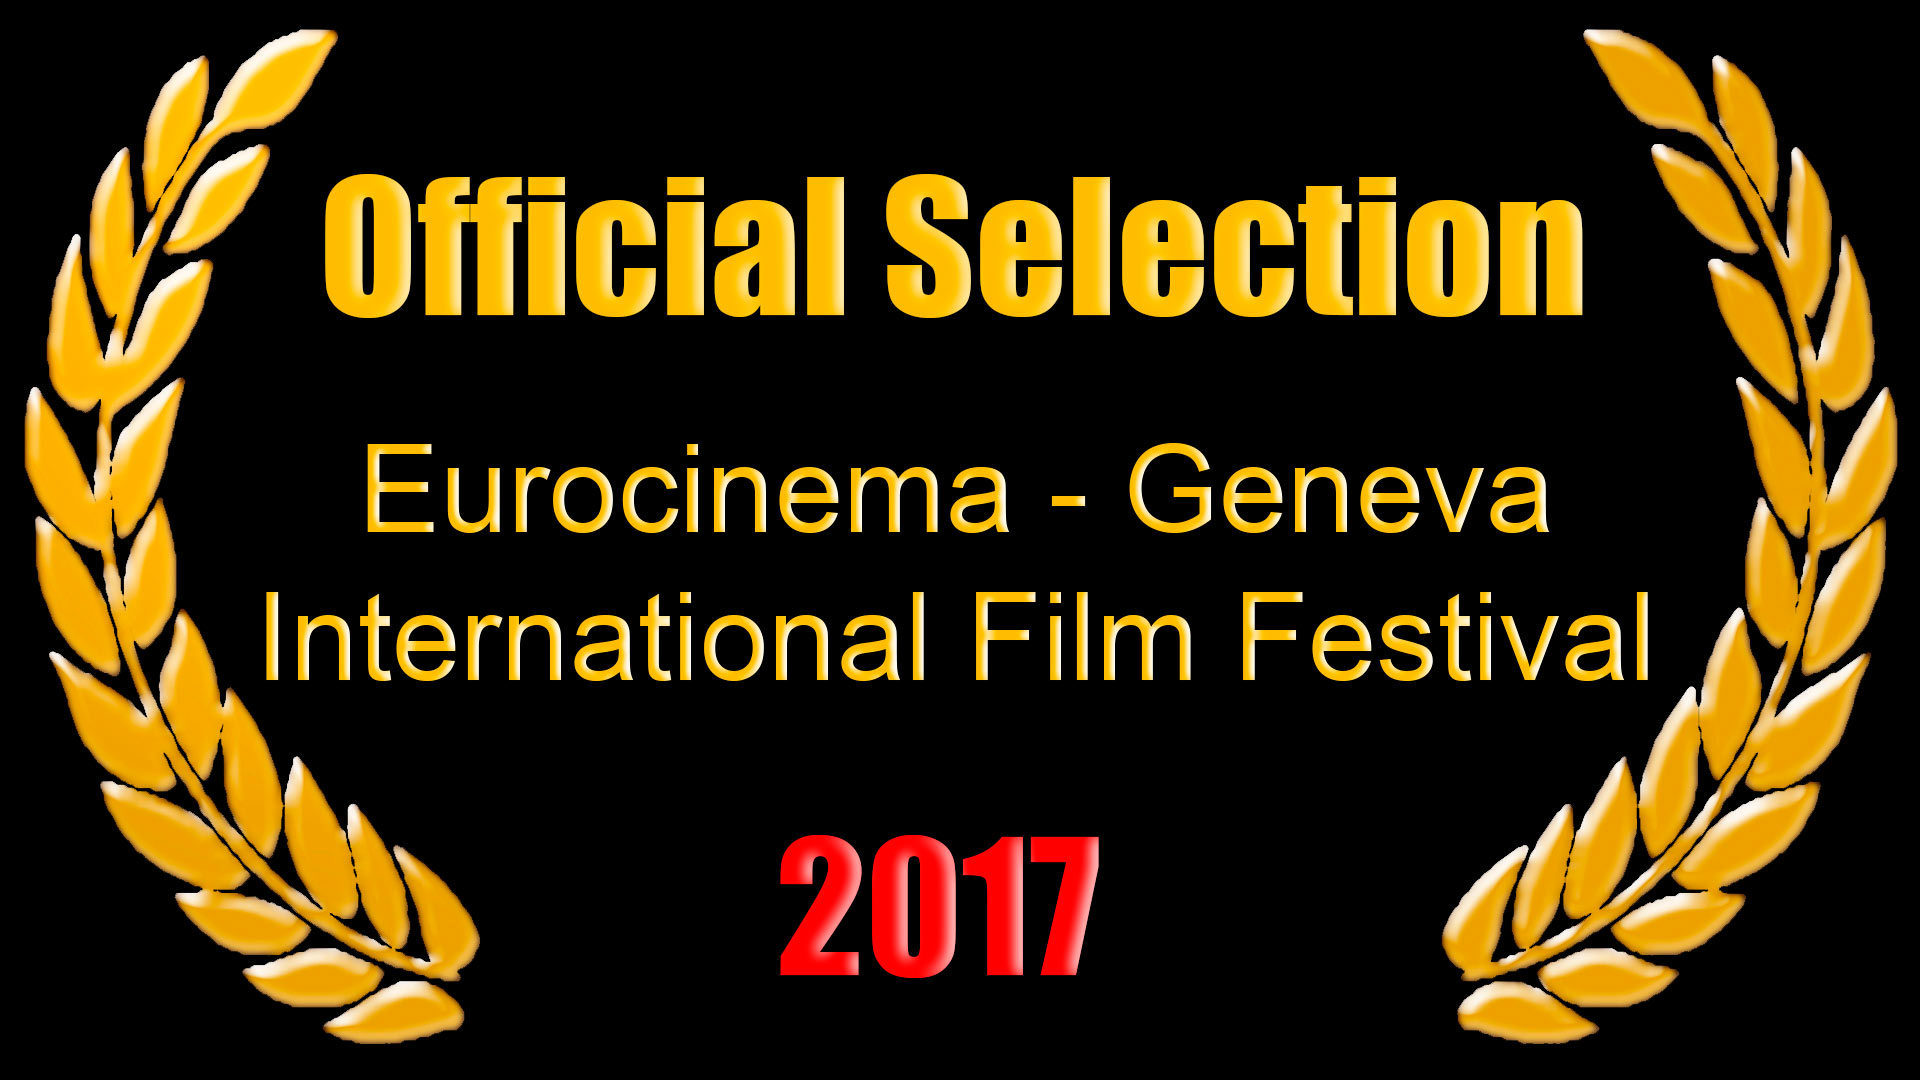 Official Selection Eurocinema - Geneva International Film Festival 2016